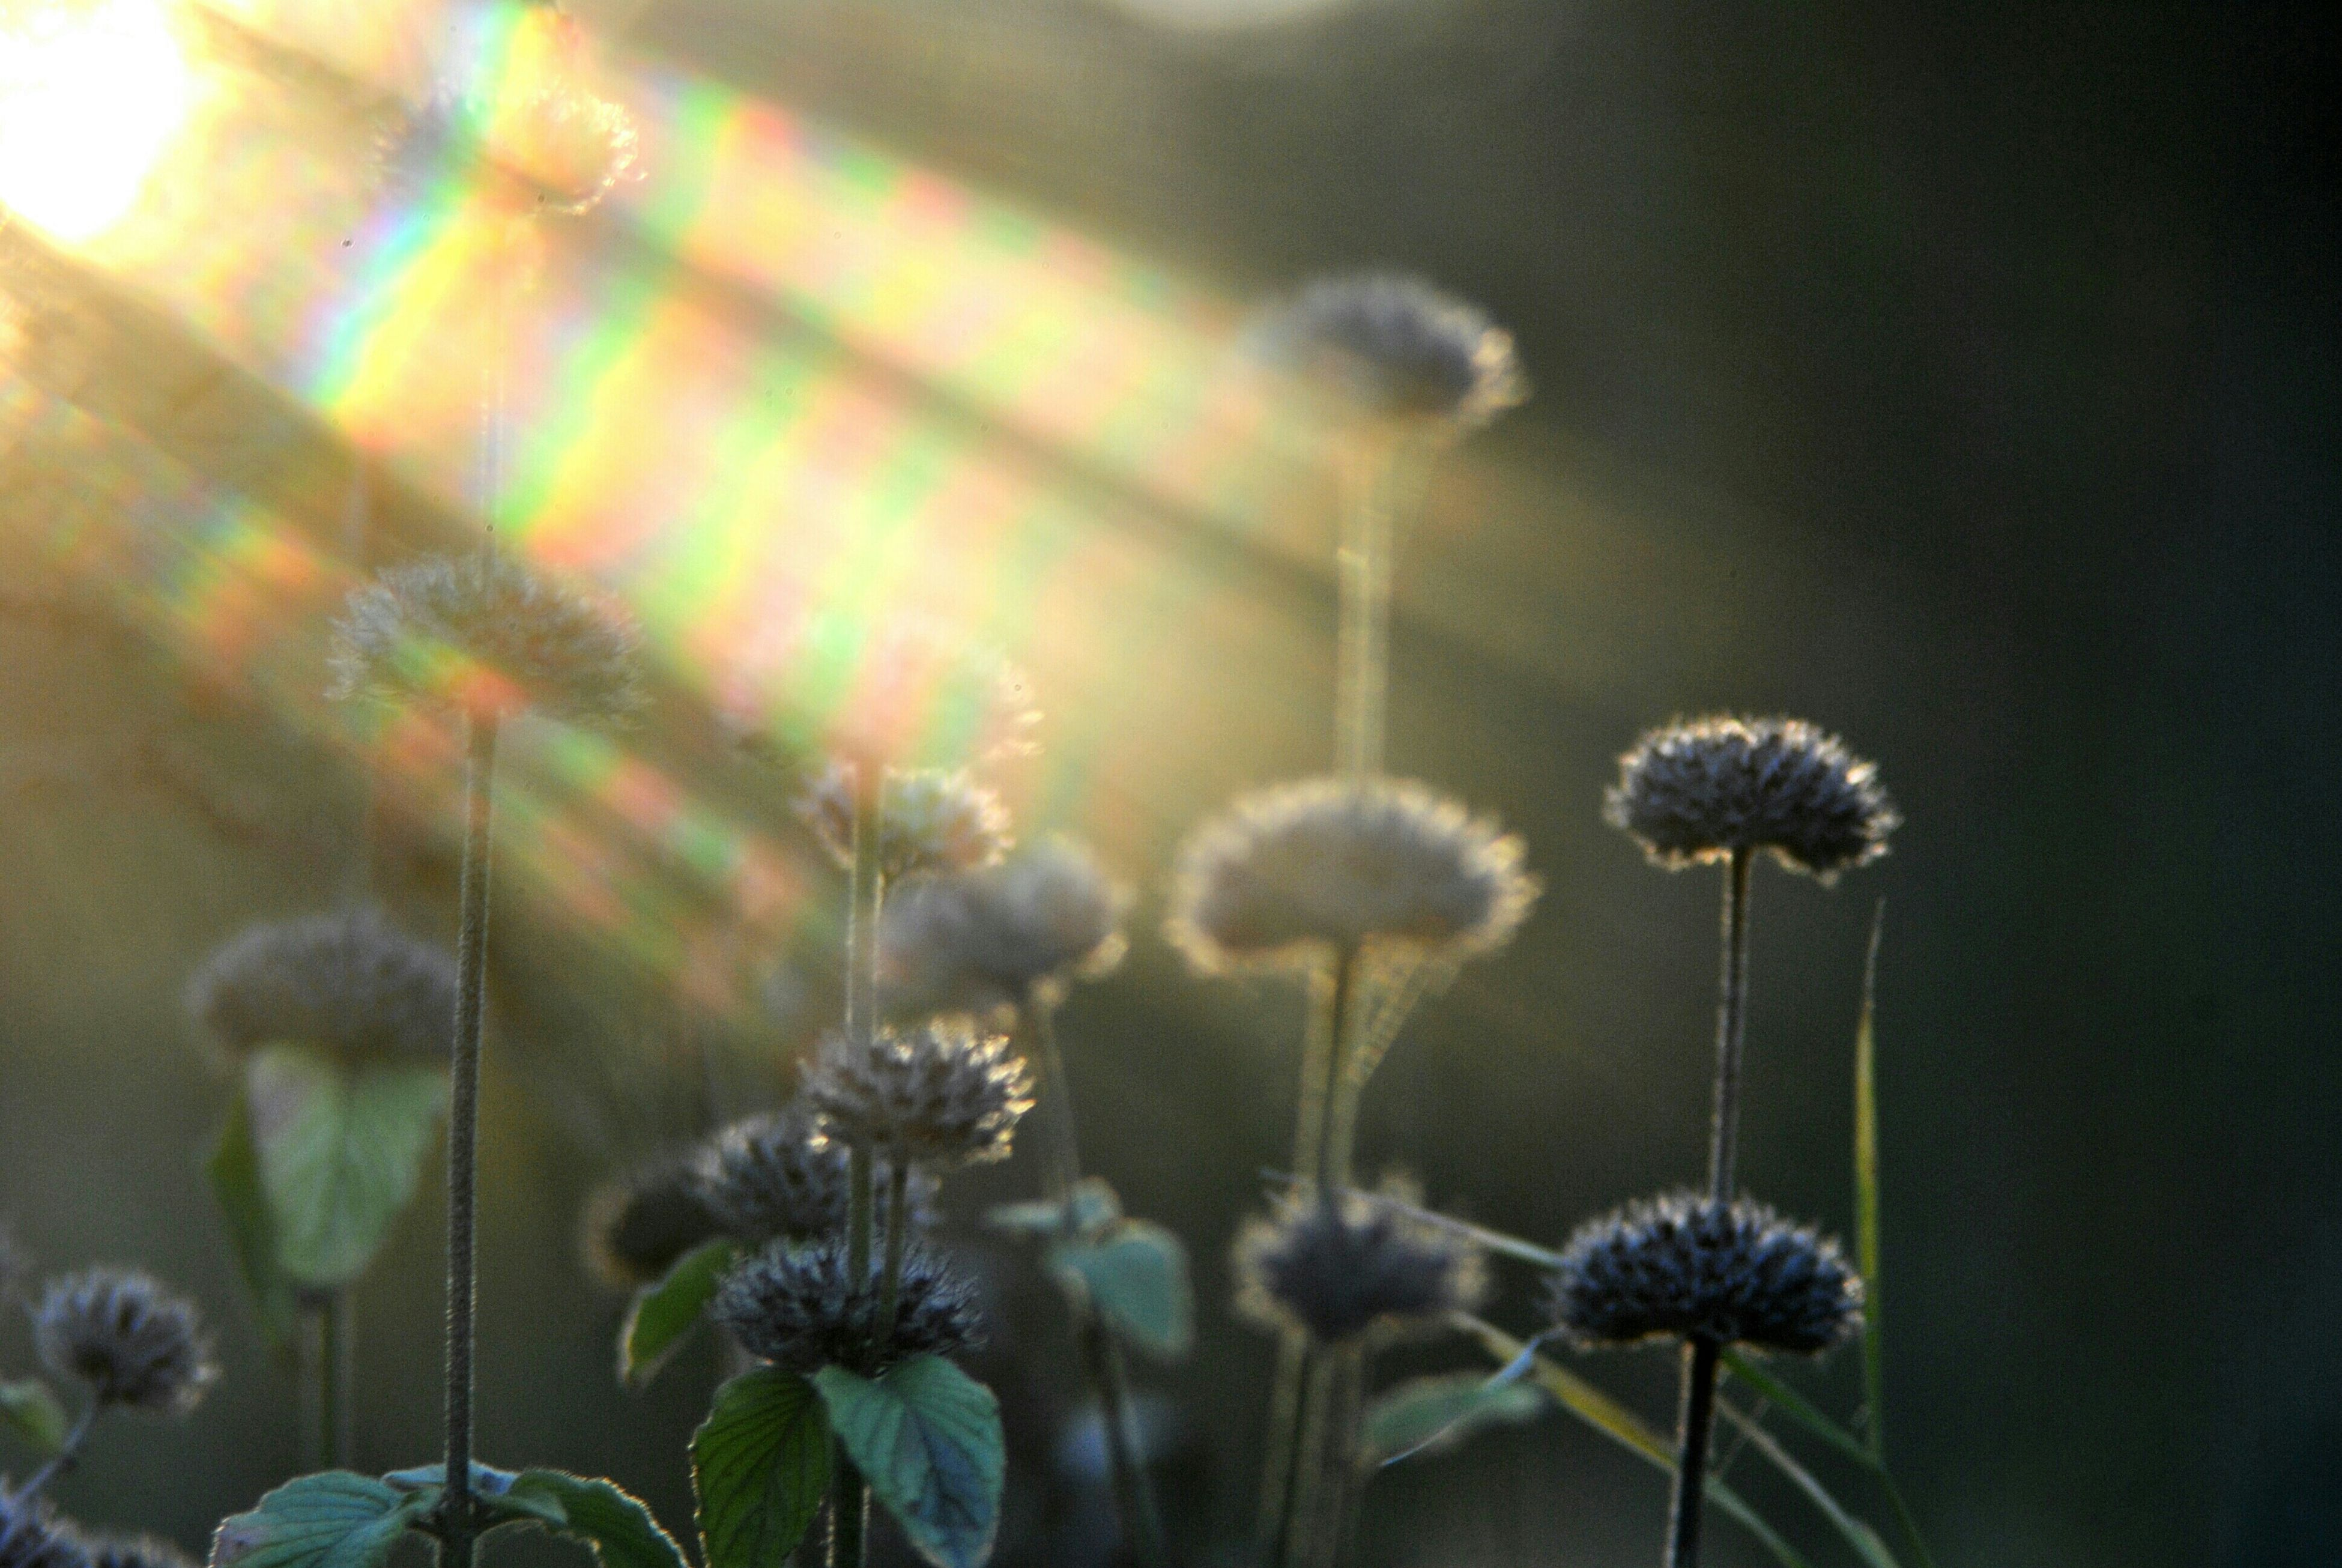 flower, growth, fragility, freshness, plant, stem, beauty in nature, nature, focus on foreground, flower head, close-up, dandelion, blooming, field, wildflower, in bloom, petal, uncultivated, outdoors, no people